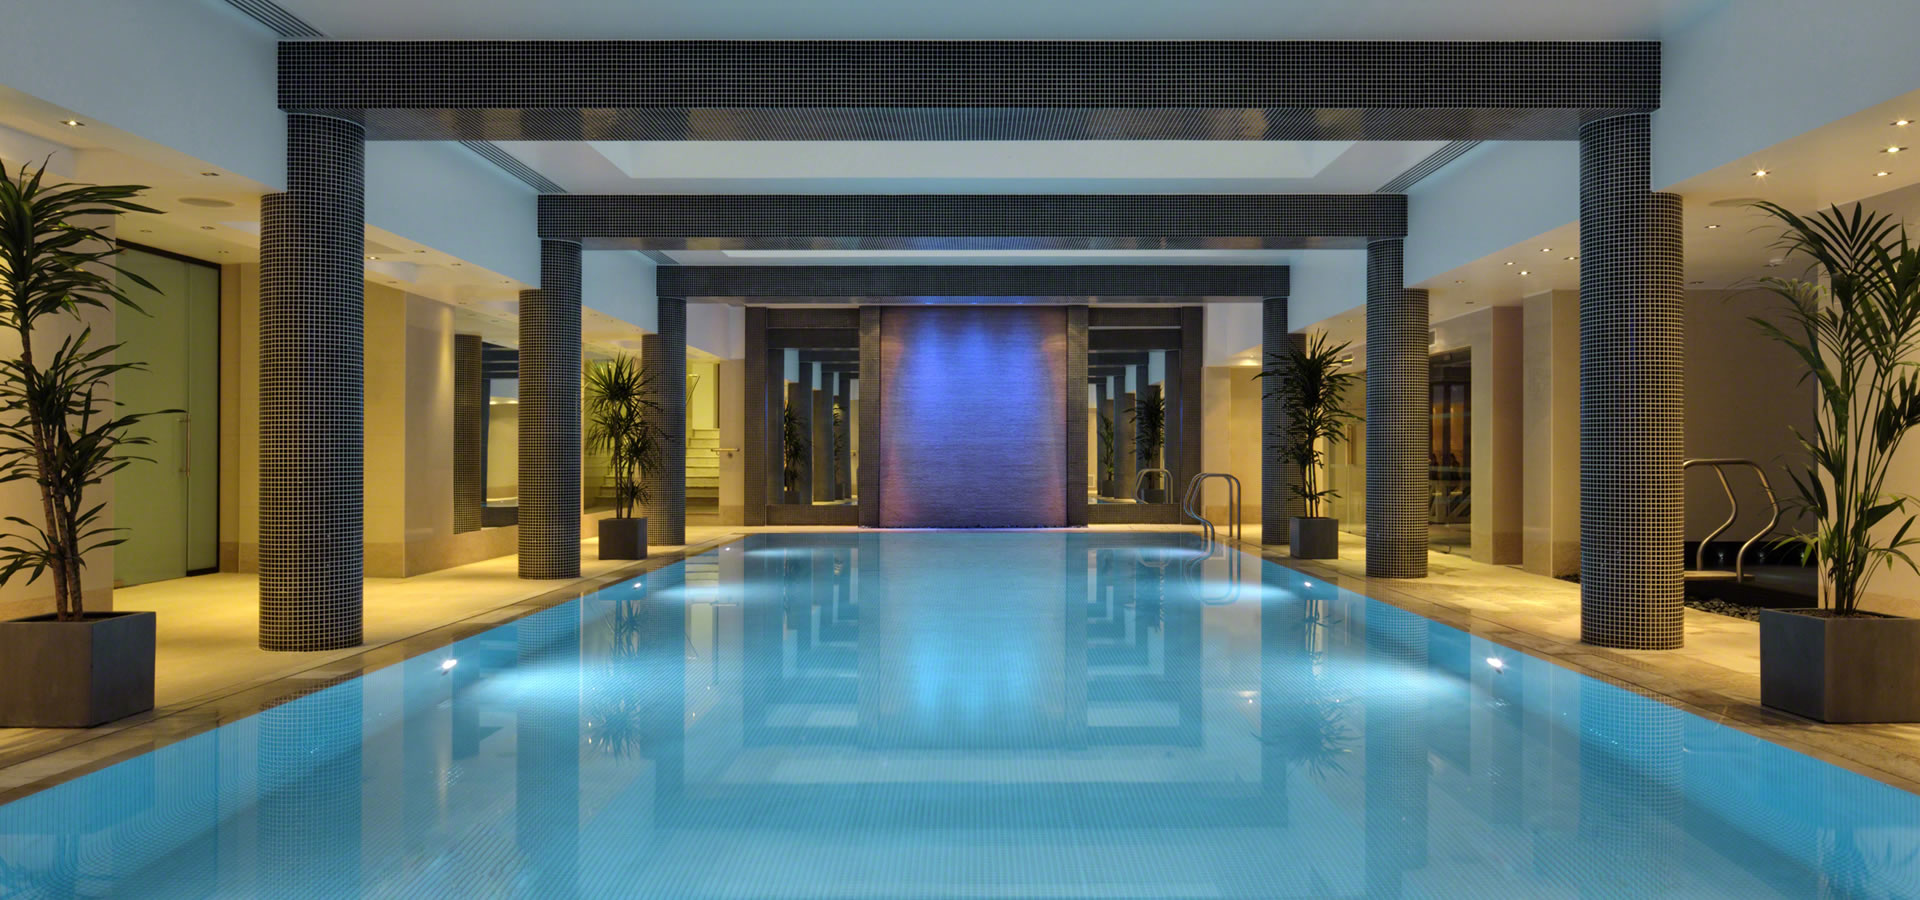 Hotels in st pauls london hotel near tate modern - Hotel in london with swimming pool ...